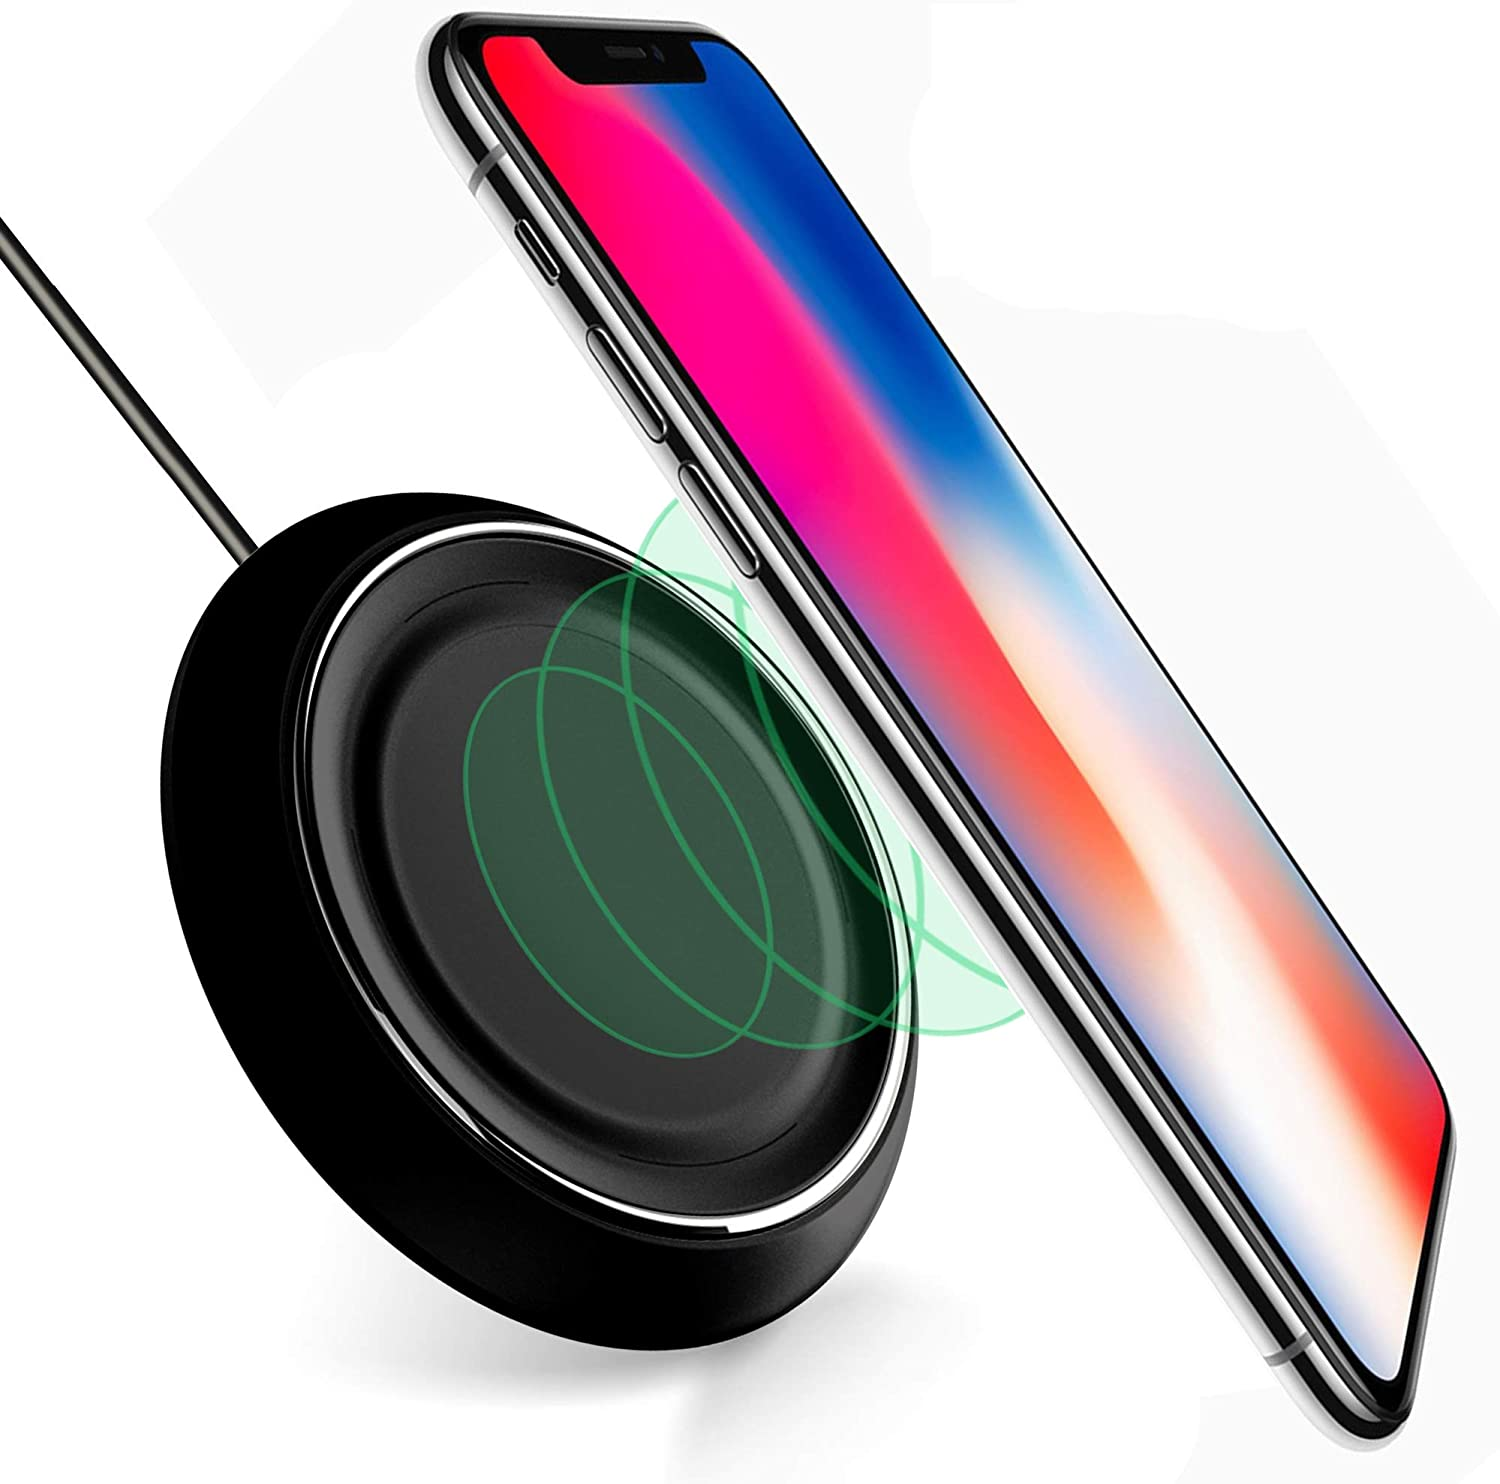 Wireless Charging Pad Compatible with Samsung Galaxy Note 8 S6 S7 S9 S8 Plus-Wireless Fast Charger iPhone X 8 8 Plus-Qi Wireless Charging Pad-Station-Wireless Charger for iPhone 8